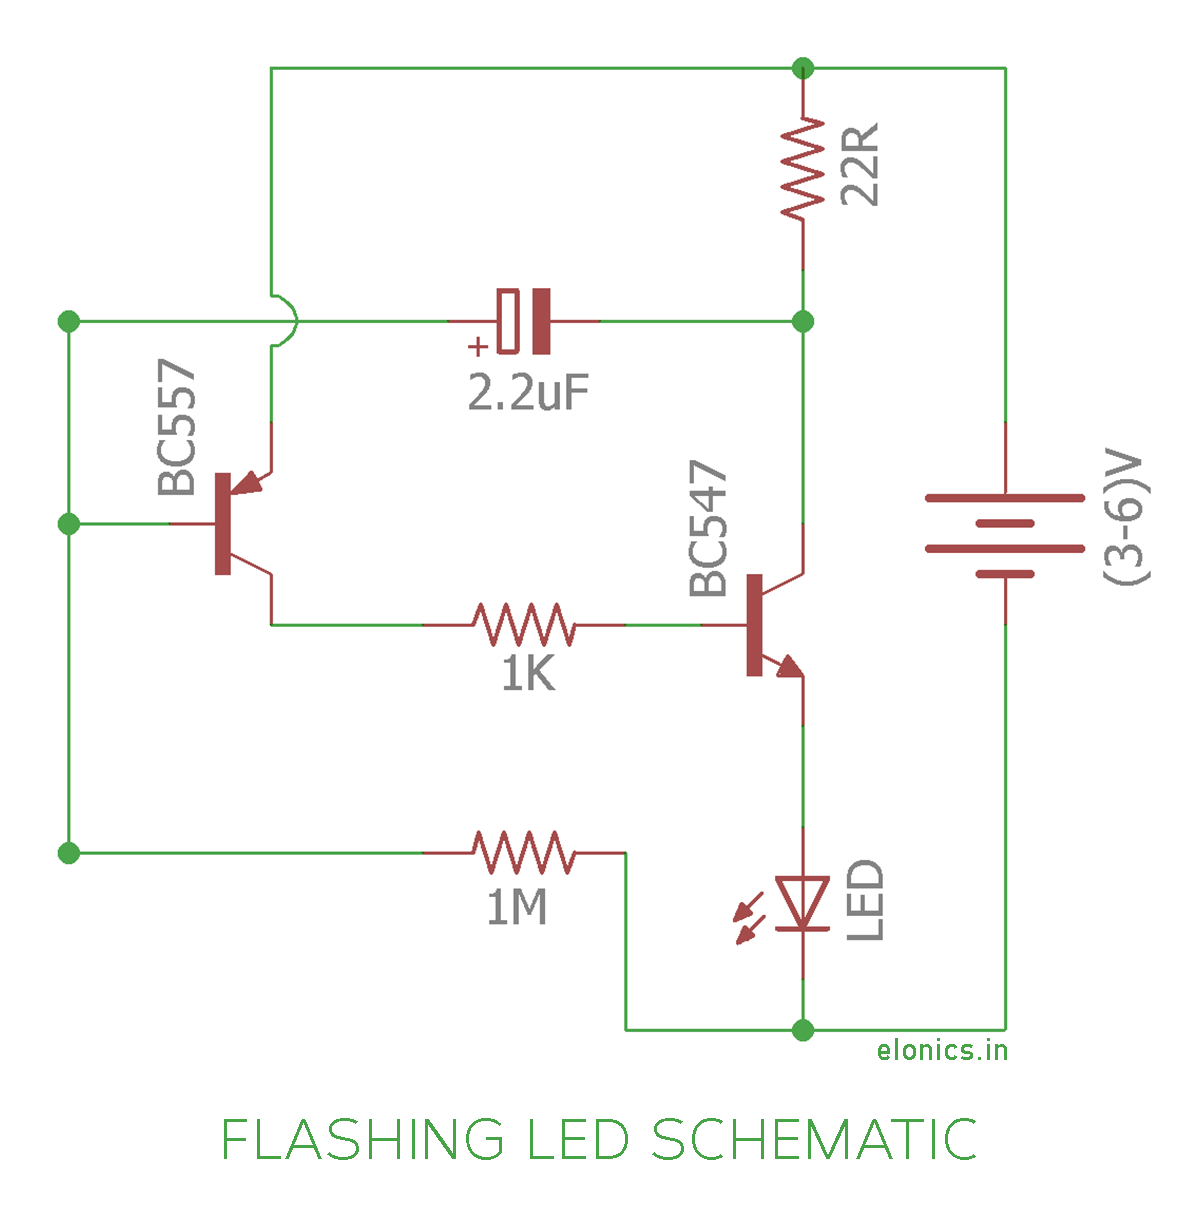 Simple Flashing Led Circuit Using Transistors Elonics Basic Blinking Schematic